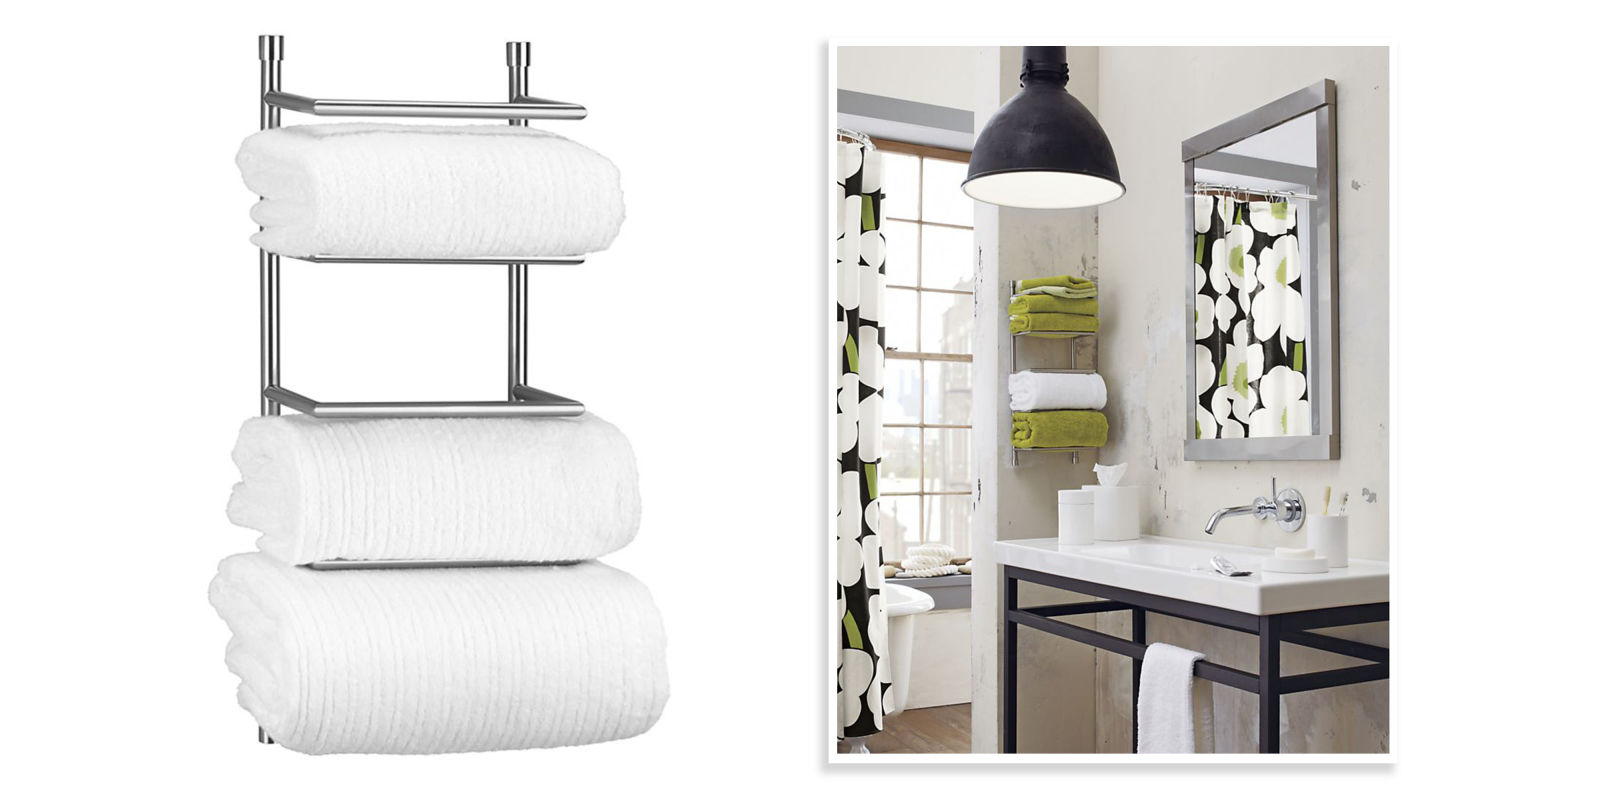 Best Bathroom Towel Racks Chic Towel Bars Racks - Bathroom towel bars and toilet paper holders for bathroom decor ideas